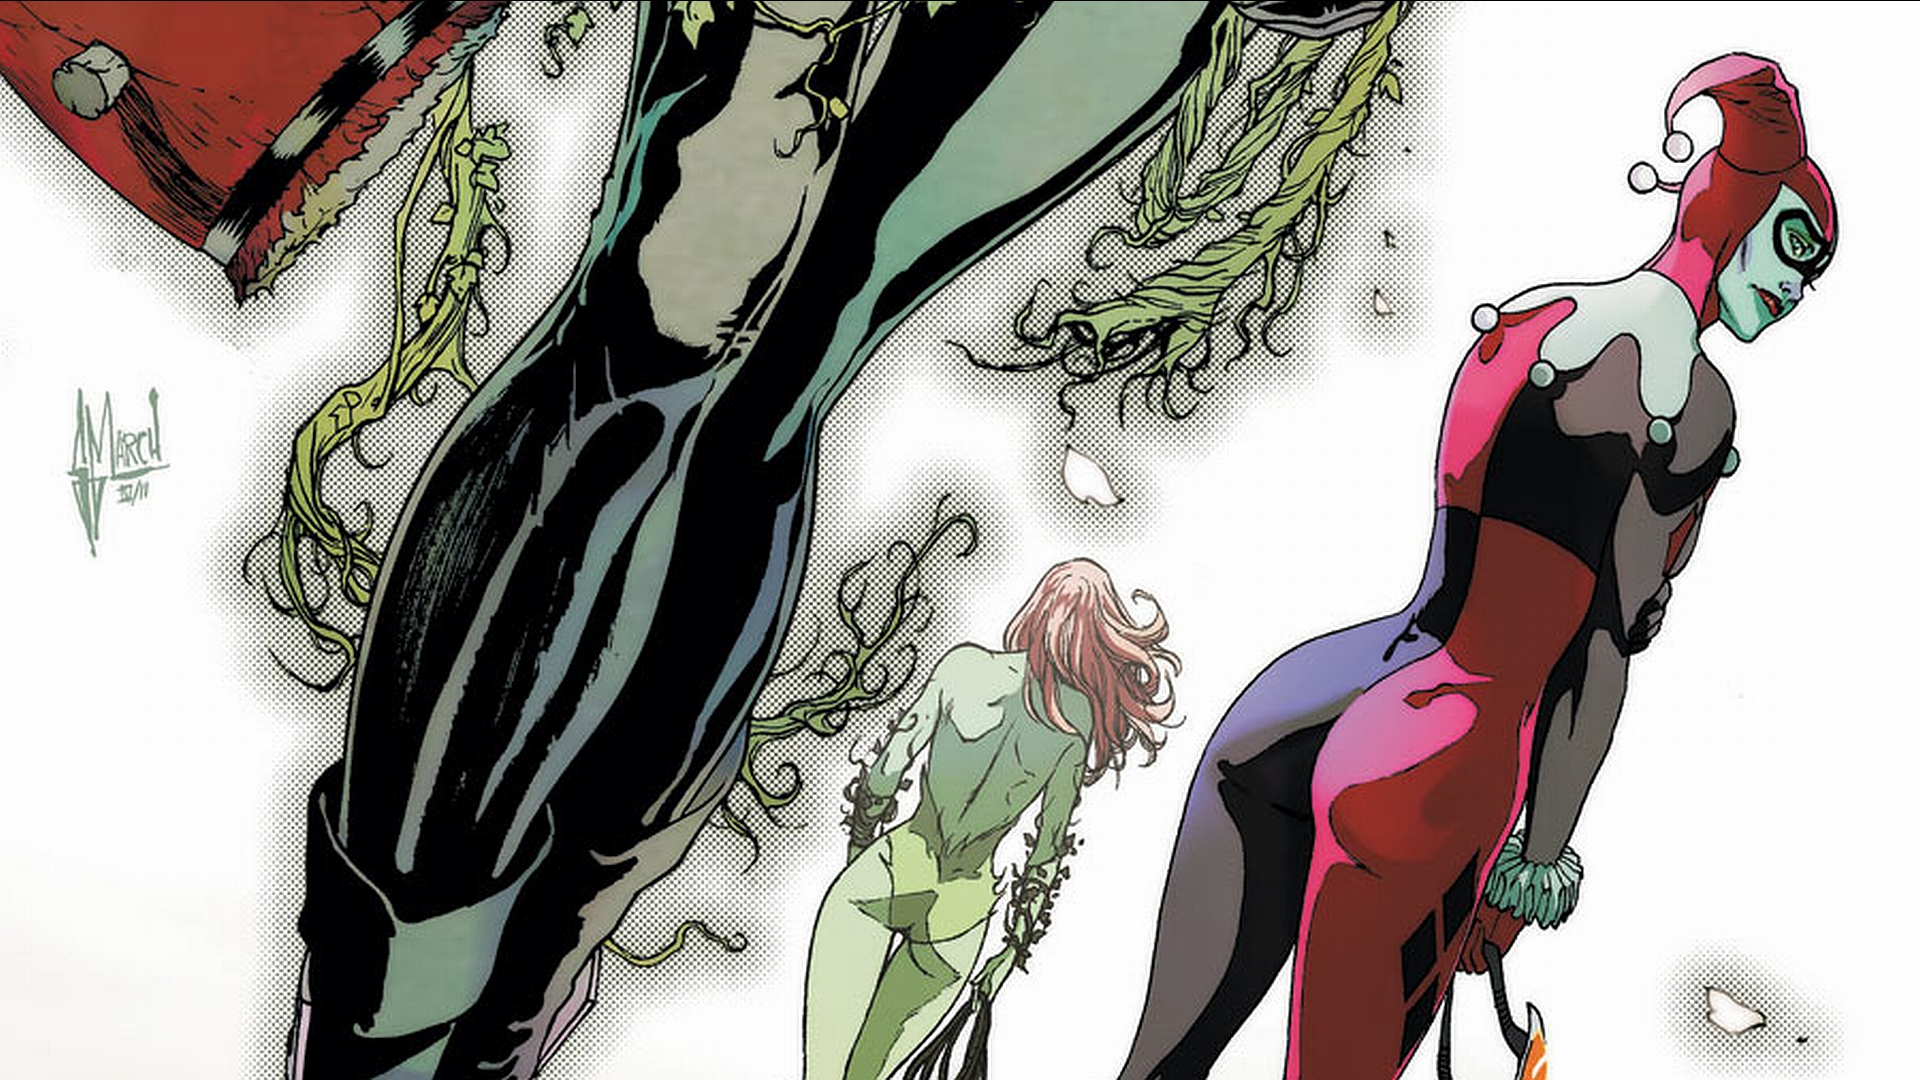 Gotham City Sirens HD Wallpaper Background Image 1920x1080 1920x1080